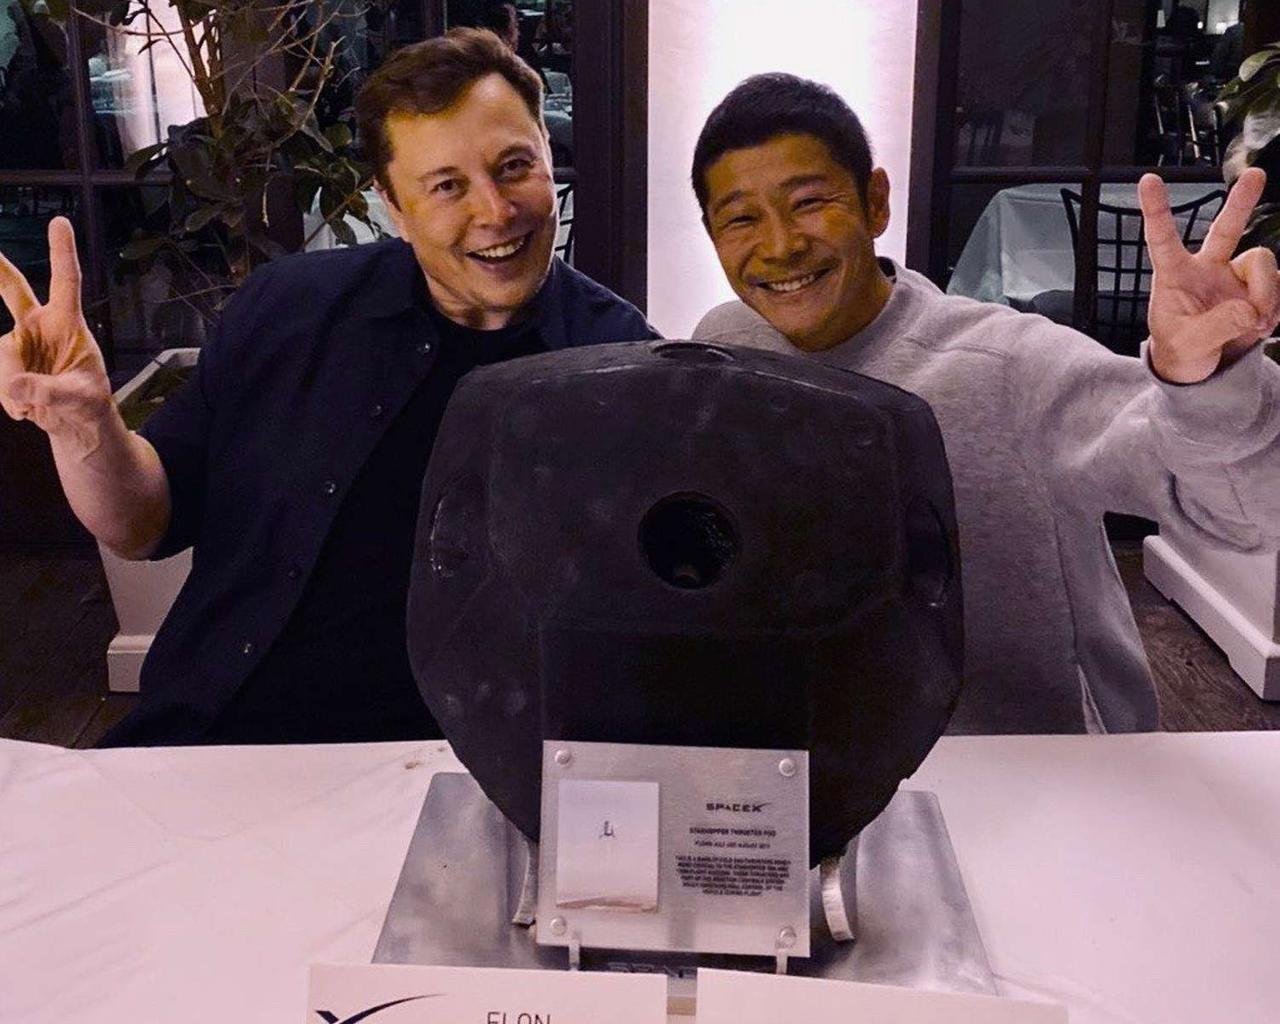 Japanese Billionaire Gives You USD 9,000 to Find Out Whether You Can Buy Happiness